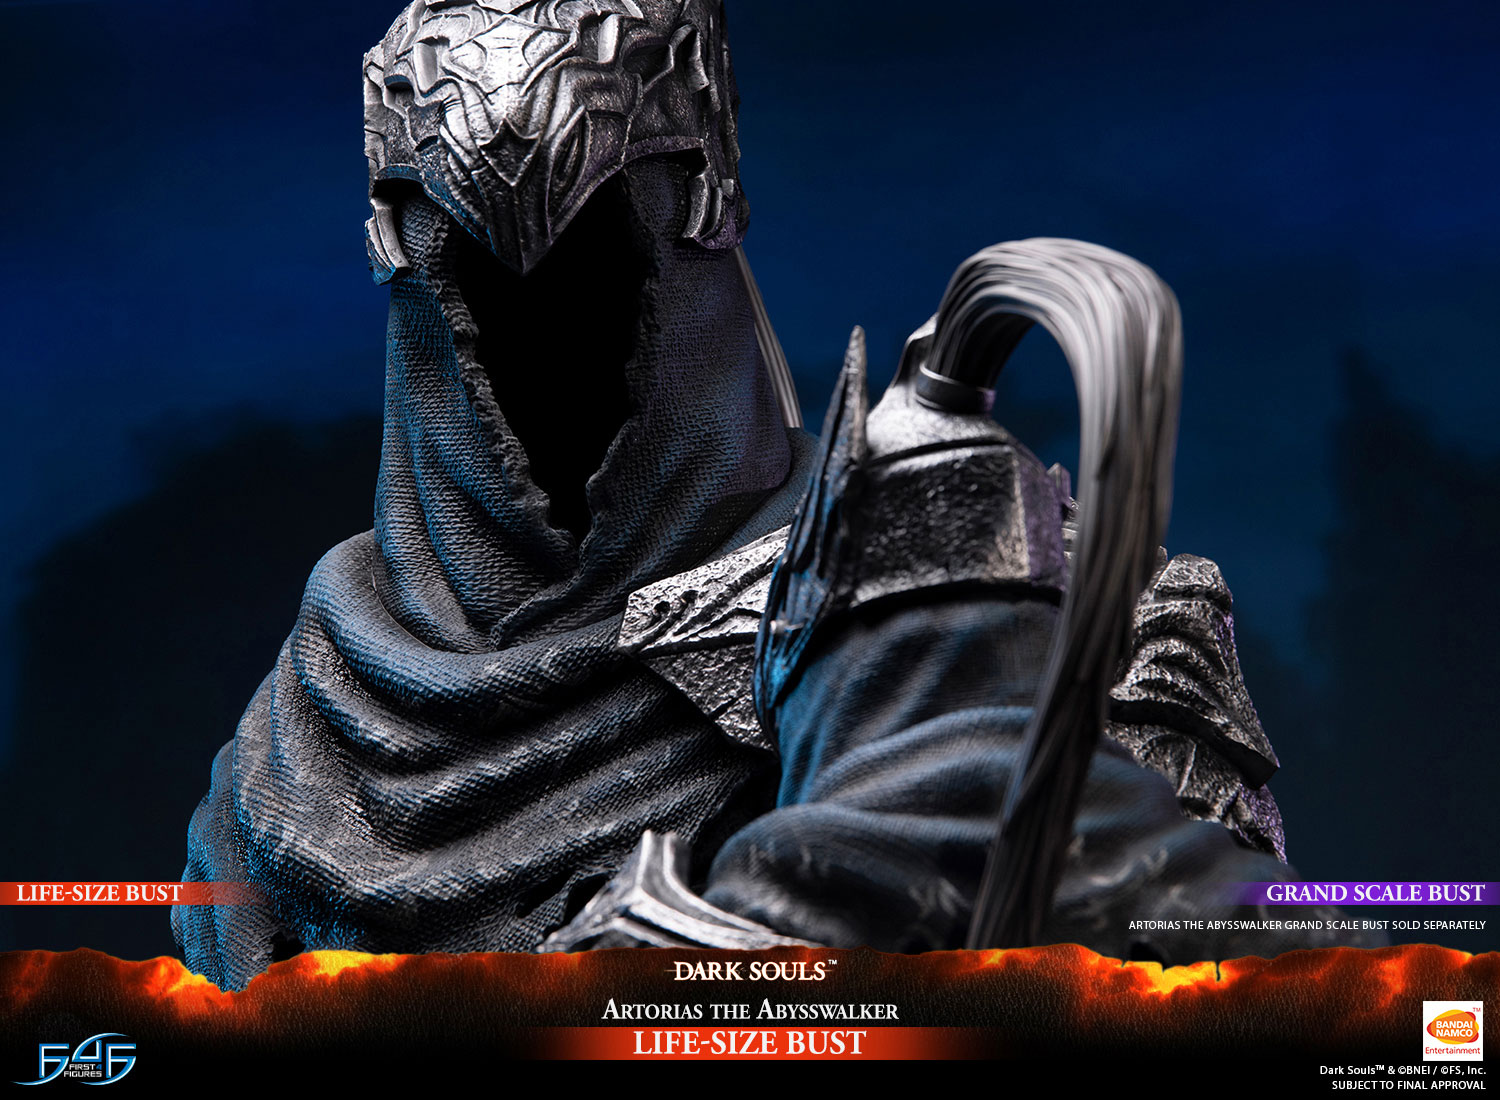 Artorias the Abysswalker Life-Size Bust (Standard Edition)